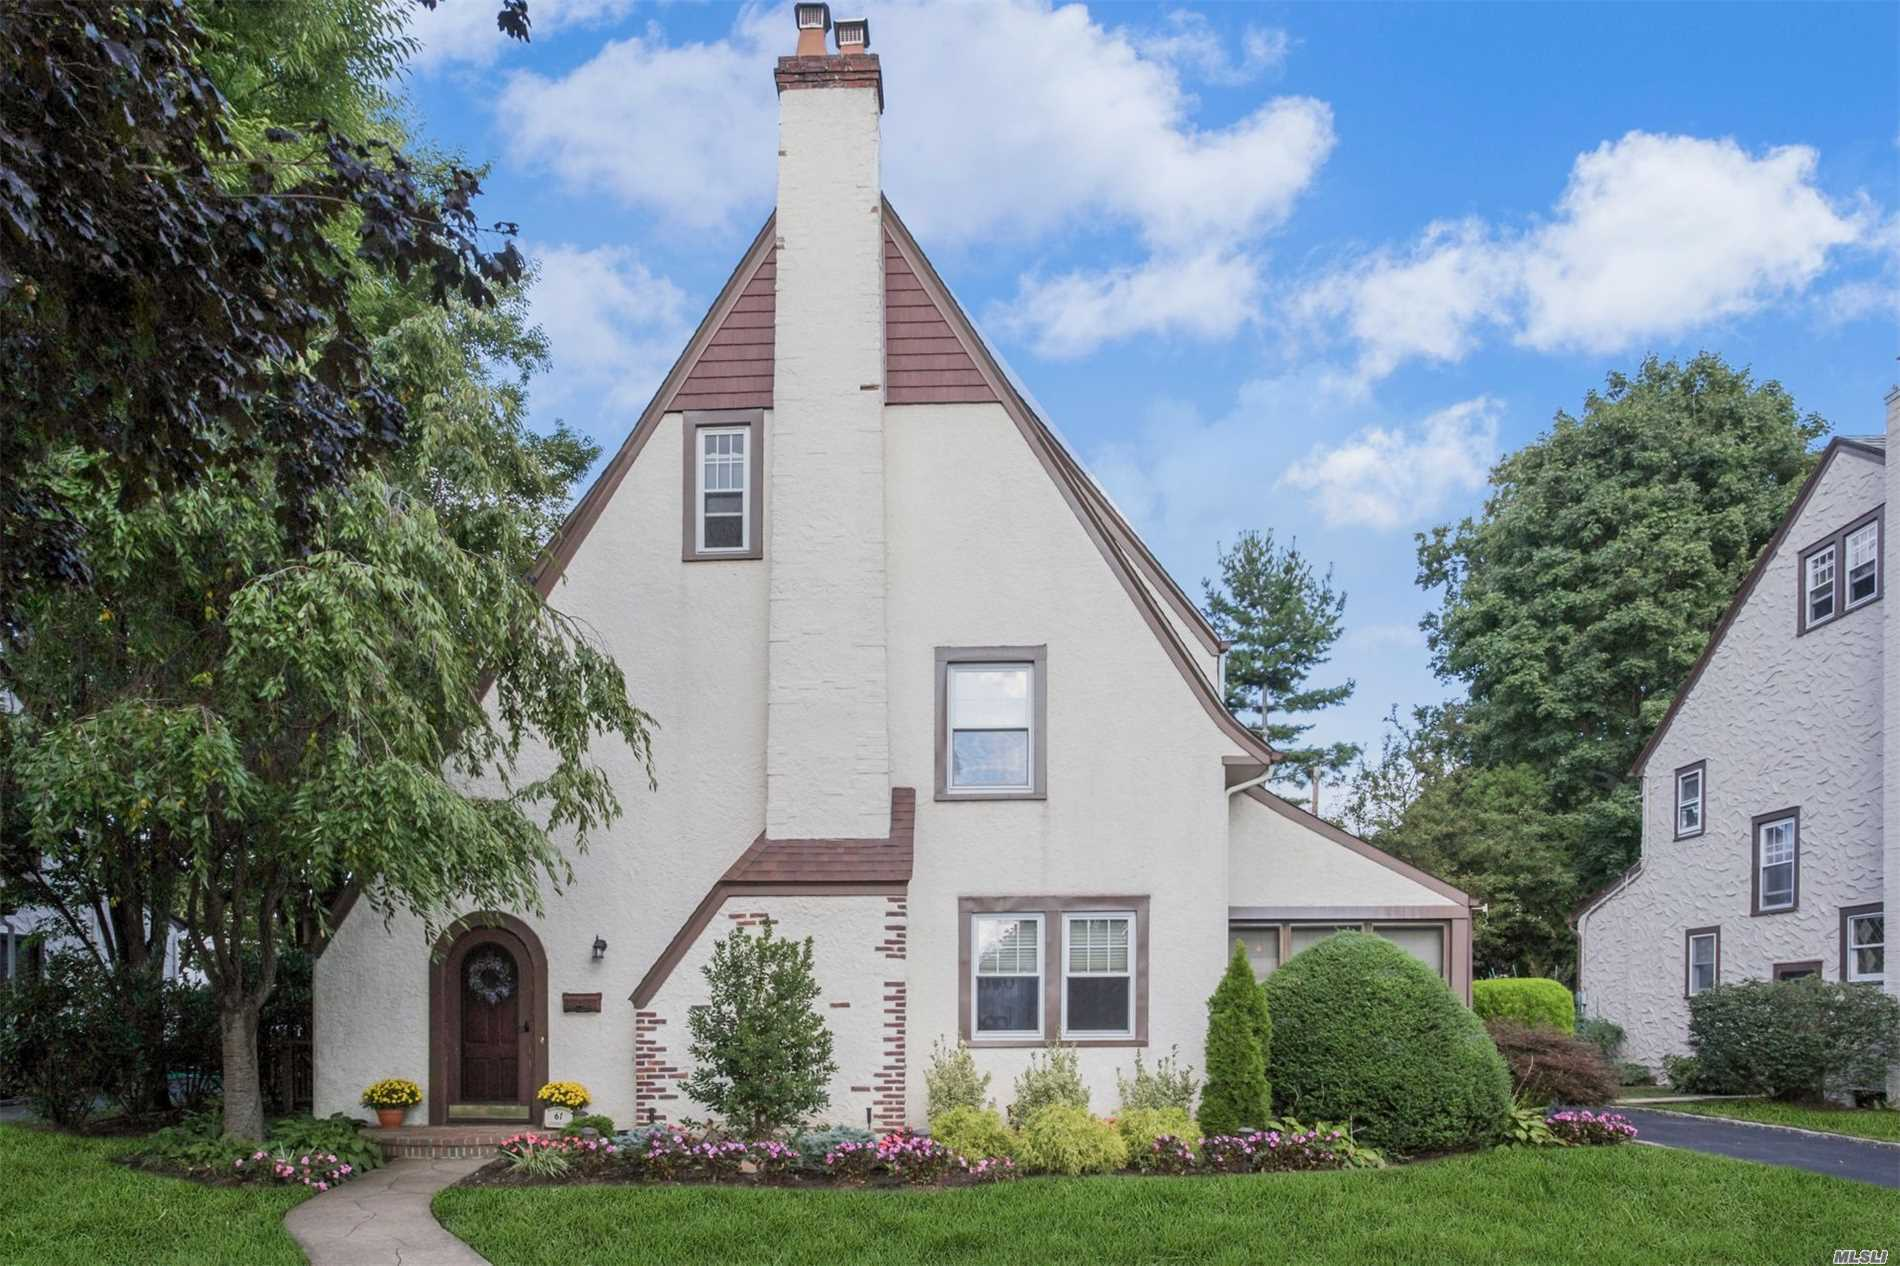 Beautifully Landscaped Tudor In The Heart Of Cathedral Gardens With Mid-Block Location And West Hempstead Sd. This Meticulously Maintained Home With Hardwood Floors Has 3/4 Bedrooms, Lg.Living Room W/Wbfp With French Door Leading To An Enclosed Patio, Spacious Dr, Eik, Updated 1 1/2 Baths, And Partially Finished Walk Up Attic. Many Extras & Updates: Igs, 2016 W/D, New Professional Landscaping. Taxes Have Been Successfully Grieved For 2019/20 Tax Year.